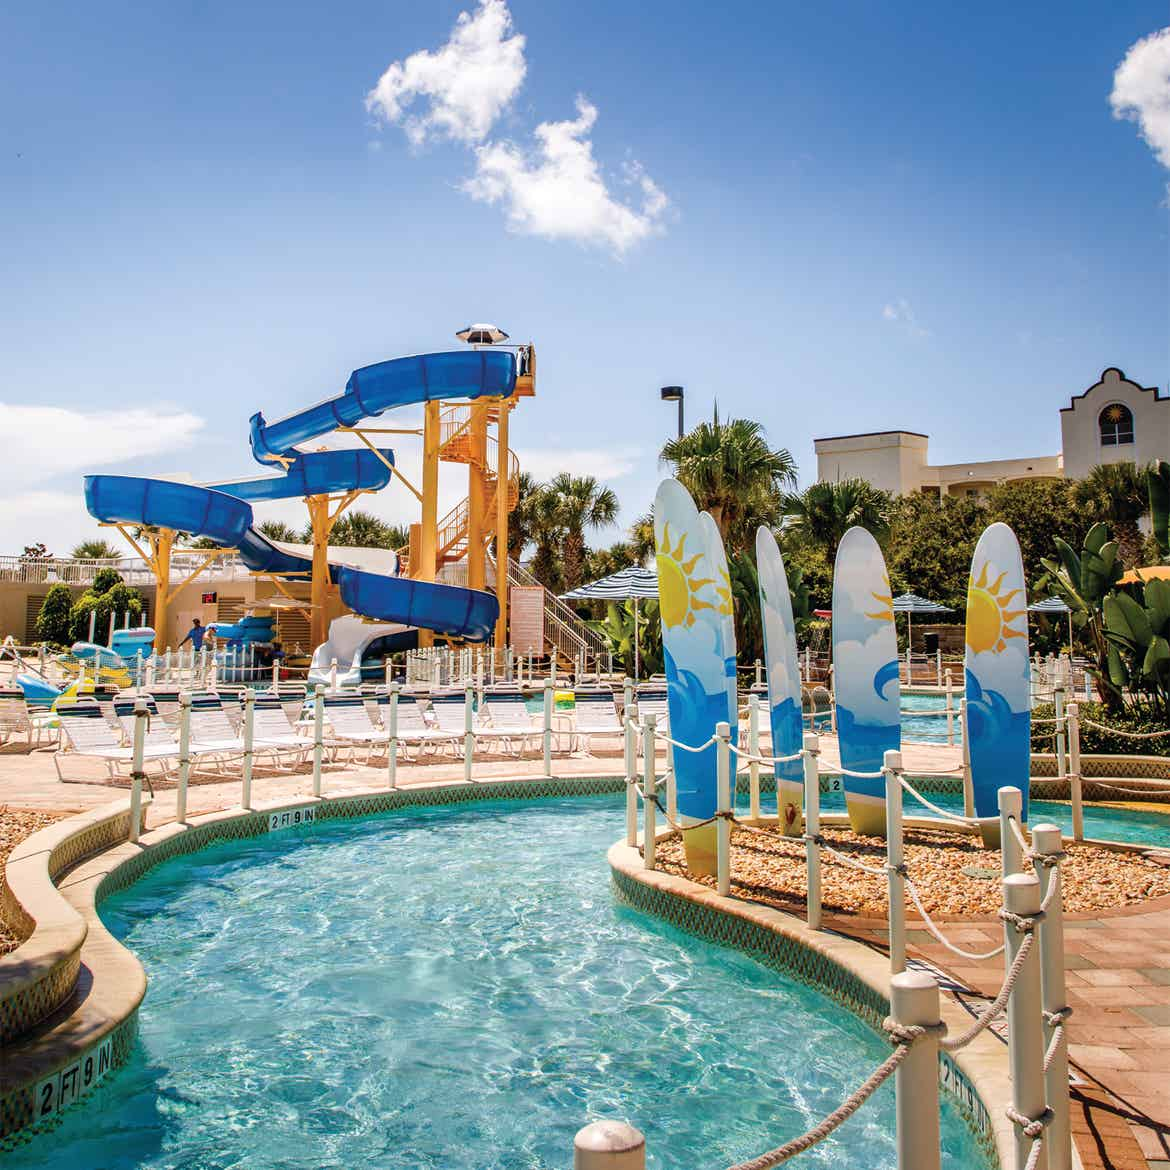 Lazy river with waterslide in the background at Cape Canaveral Beach Resort.